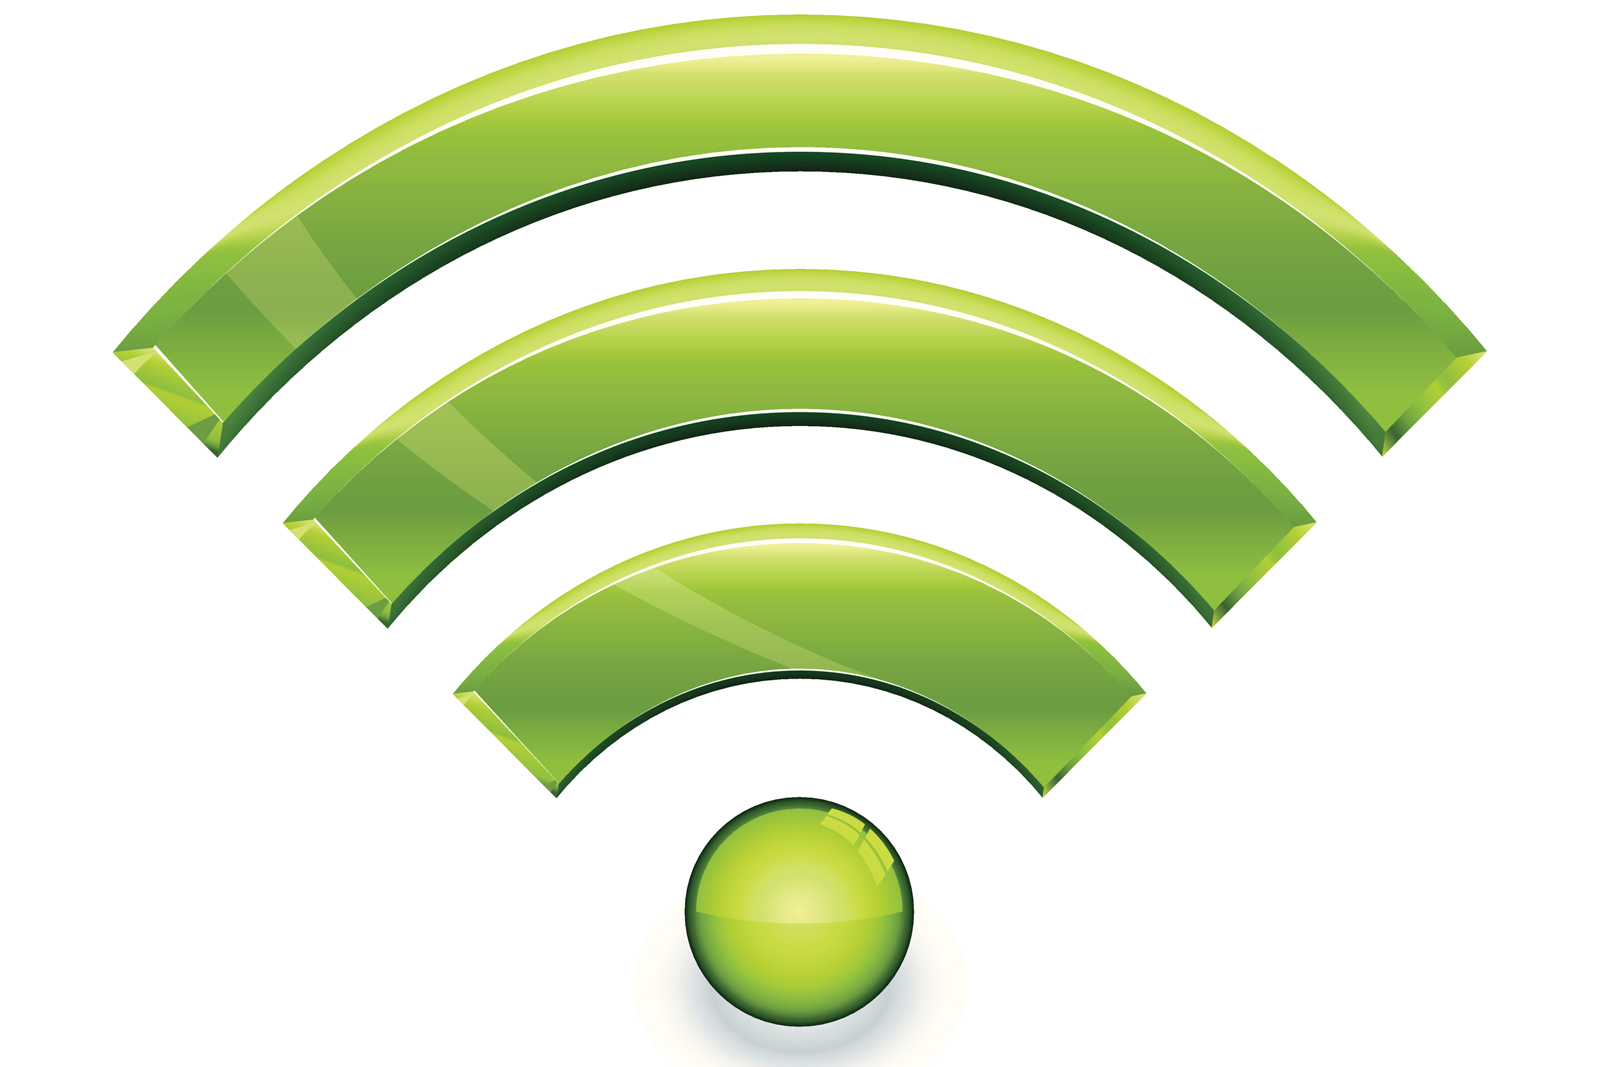 1600x1067 Tablet Wireless Network Clip Art Drawings Related To Nature